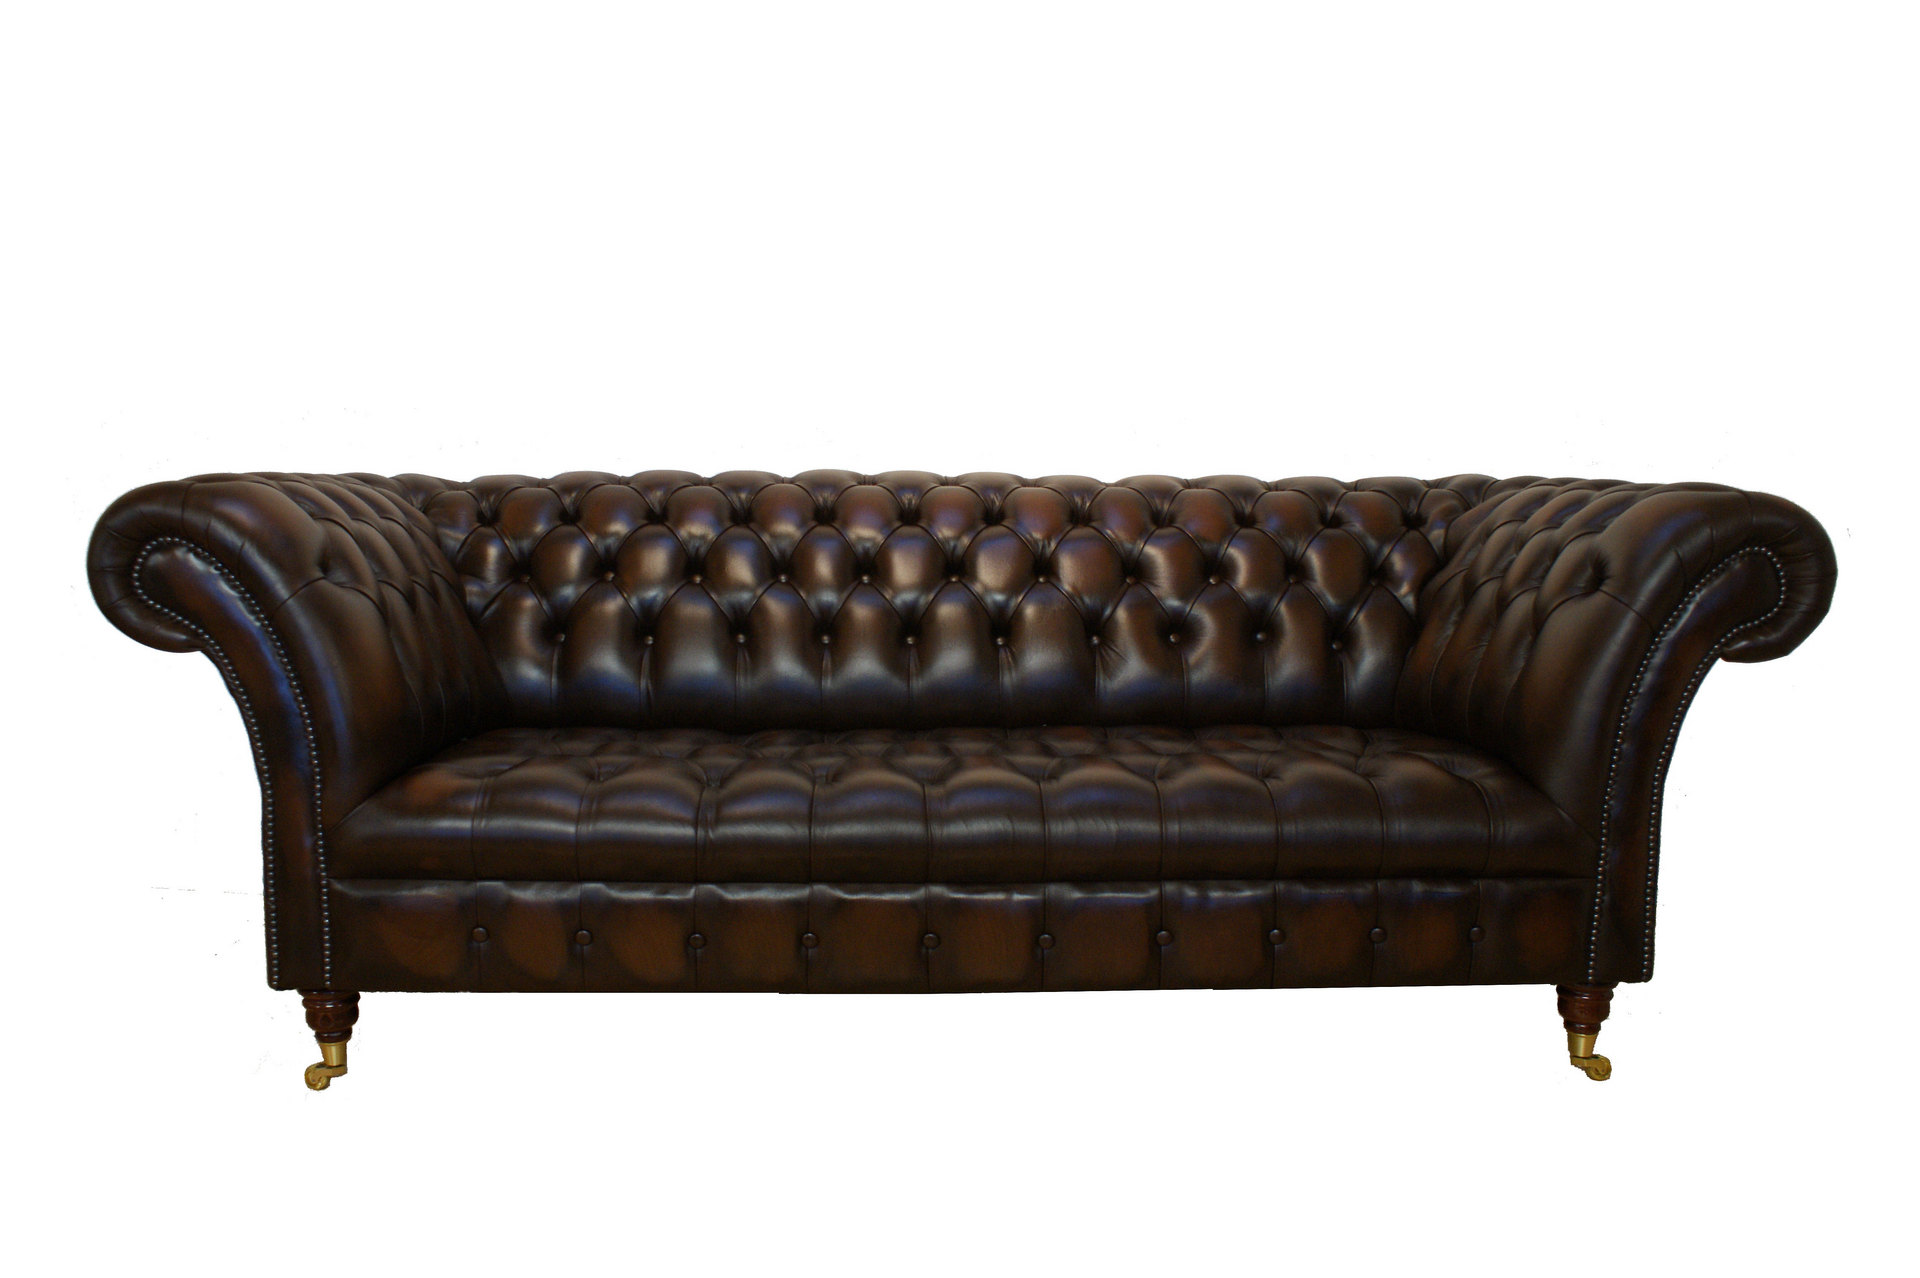 Chesterfield sofas january 2011 for Leather furniture